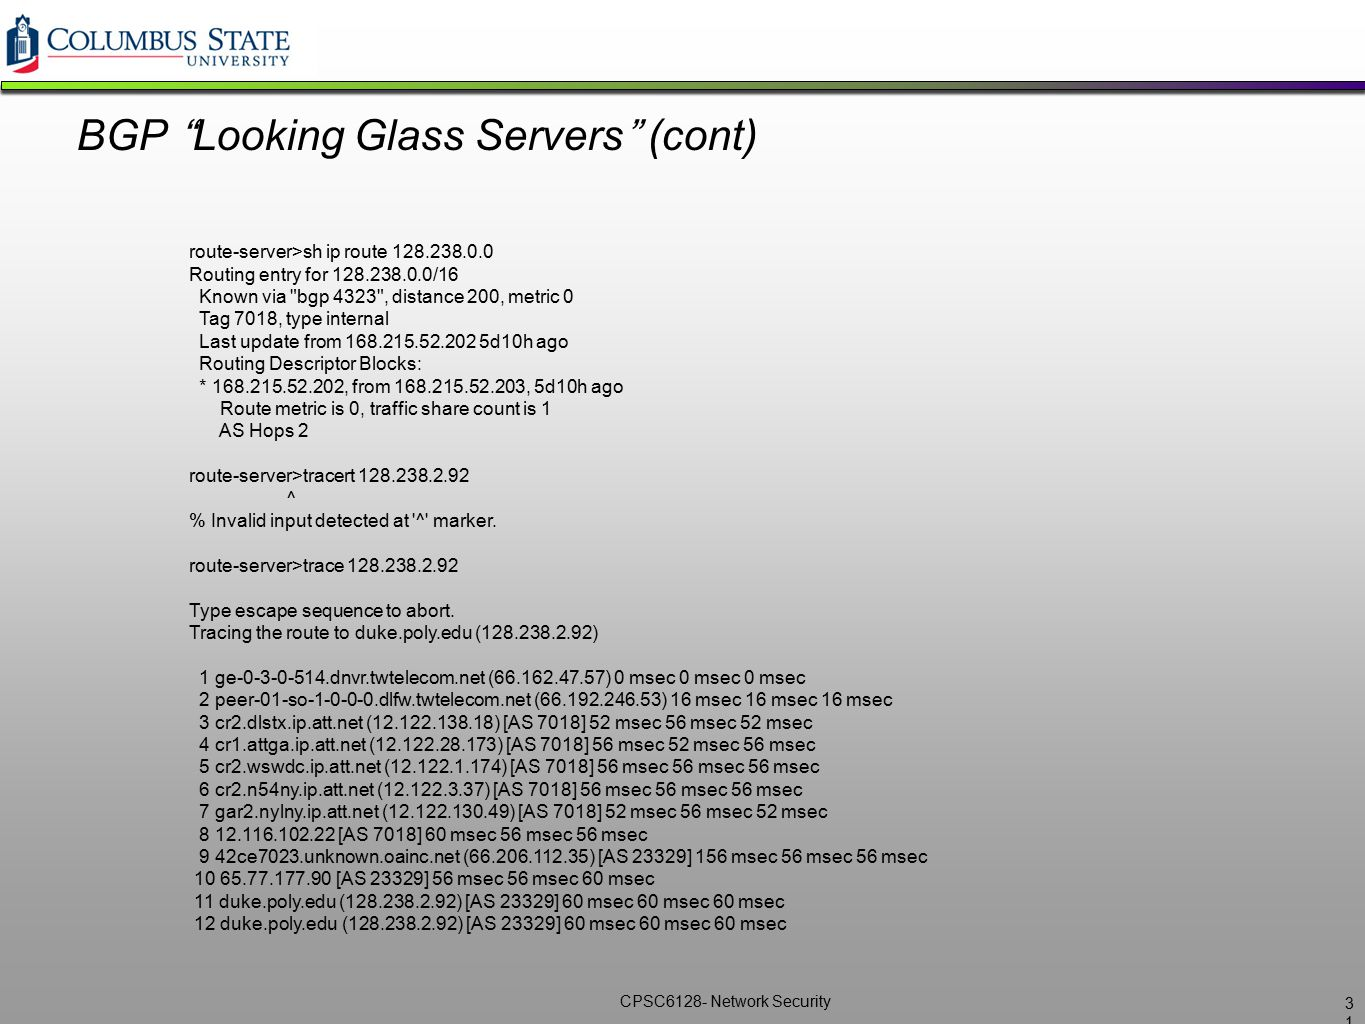 BGP Looking Glass Servers (cont)